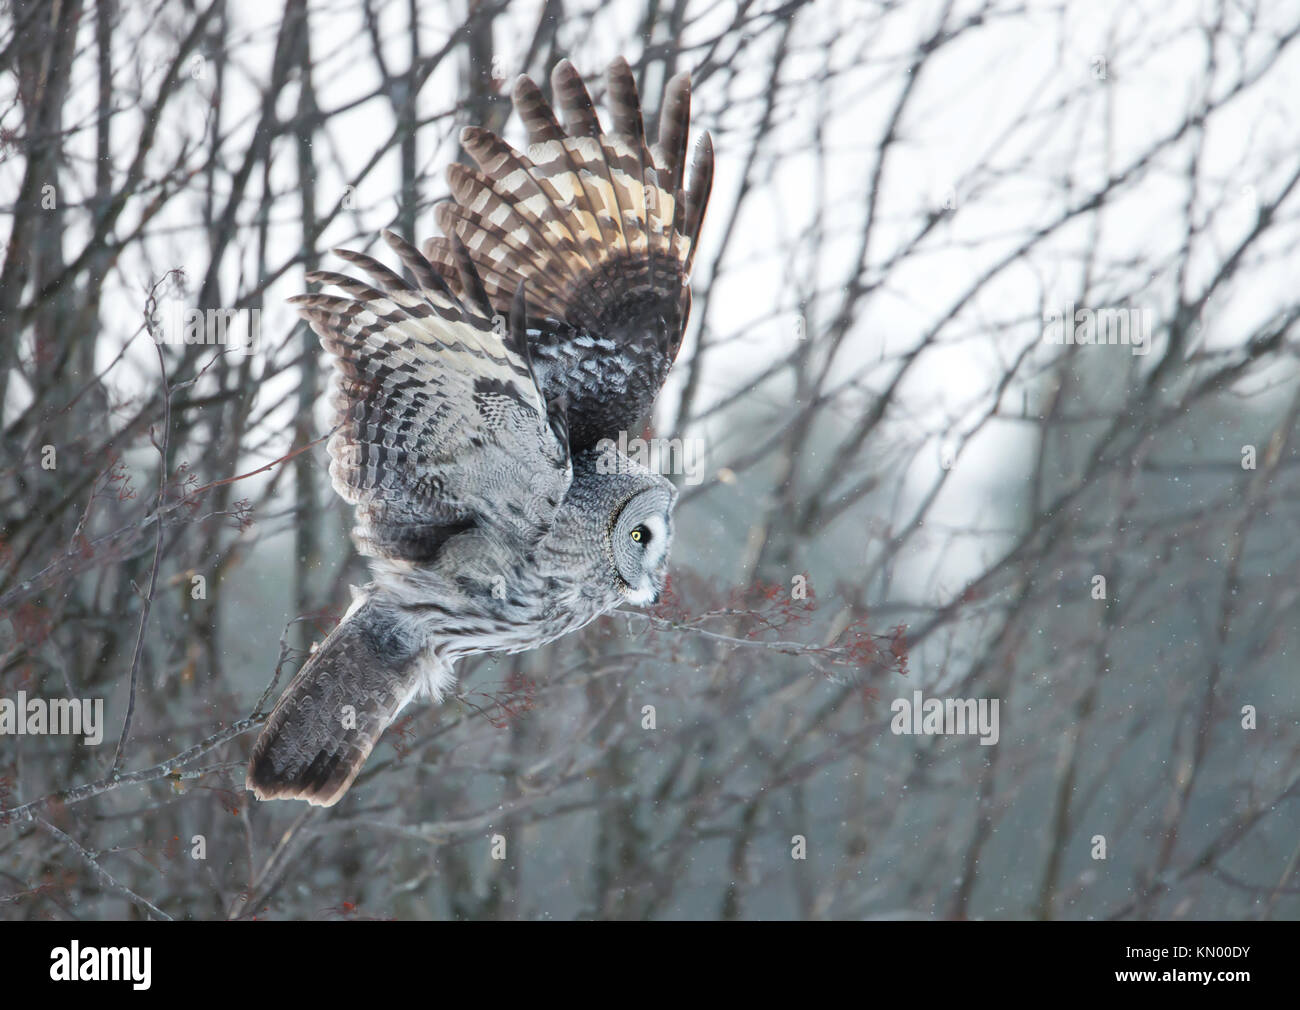 Great grey owl swooping with the trees at the background during winter in Finland - Stock Image